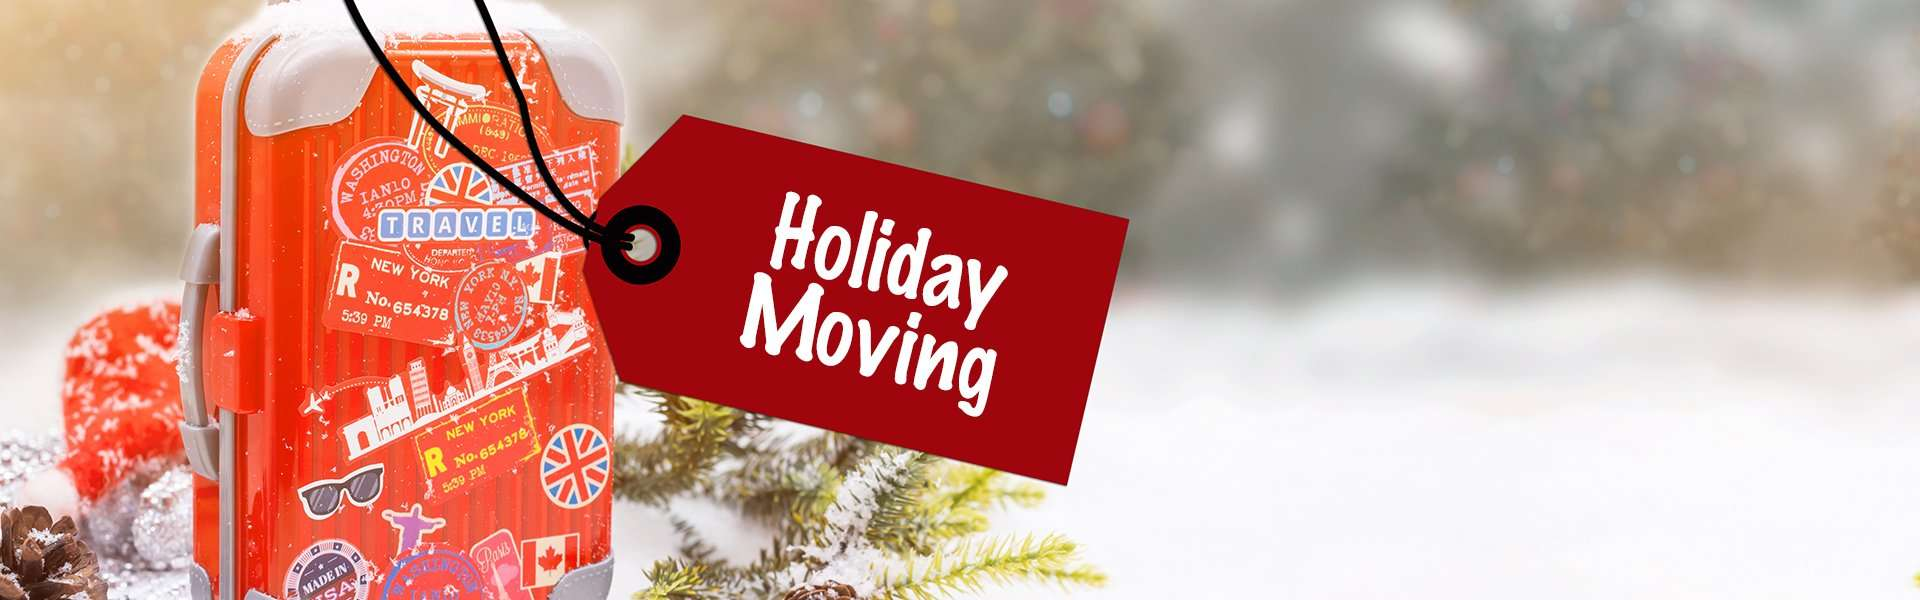 Holiday Moving Ideas